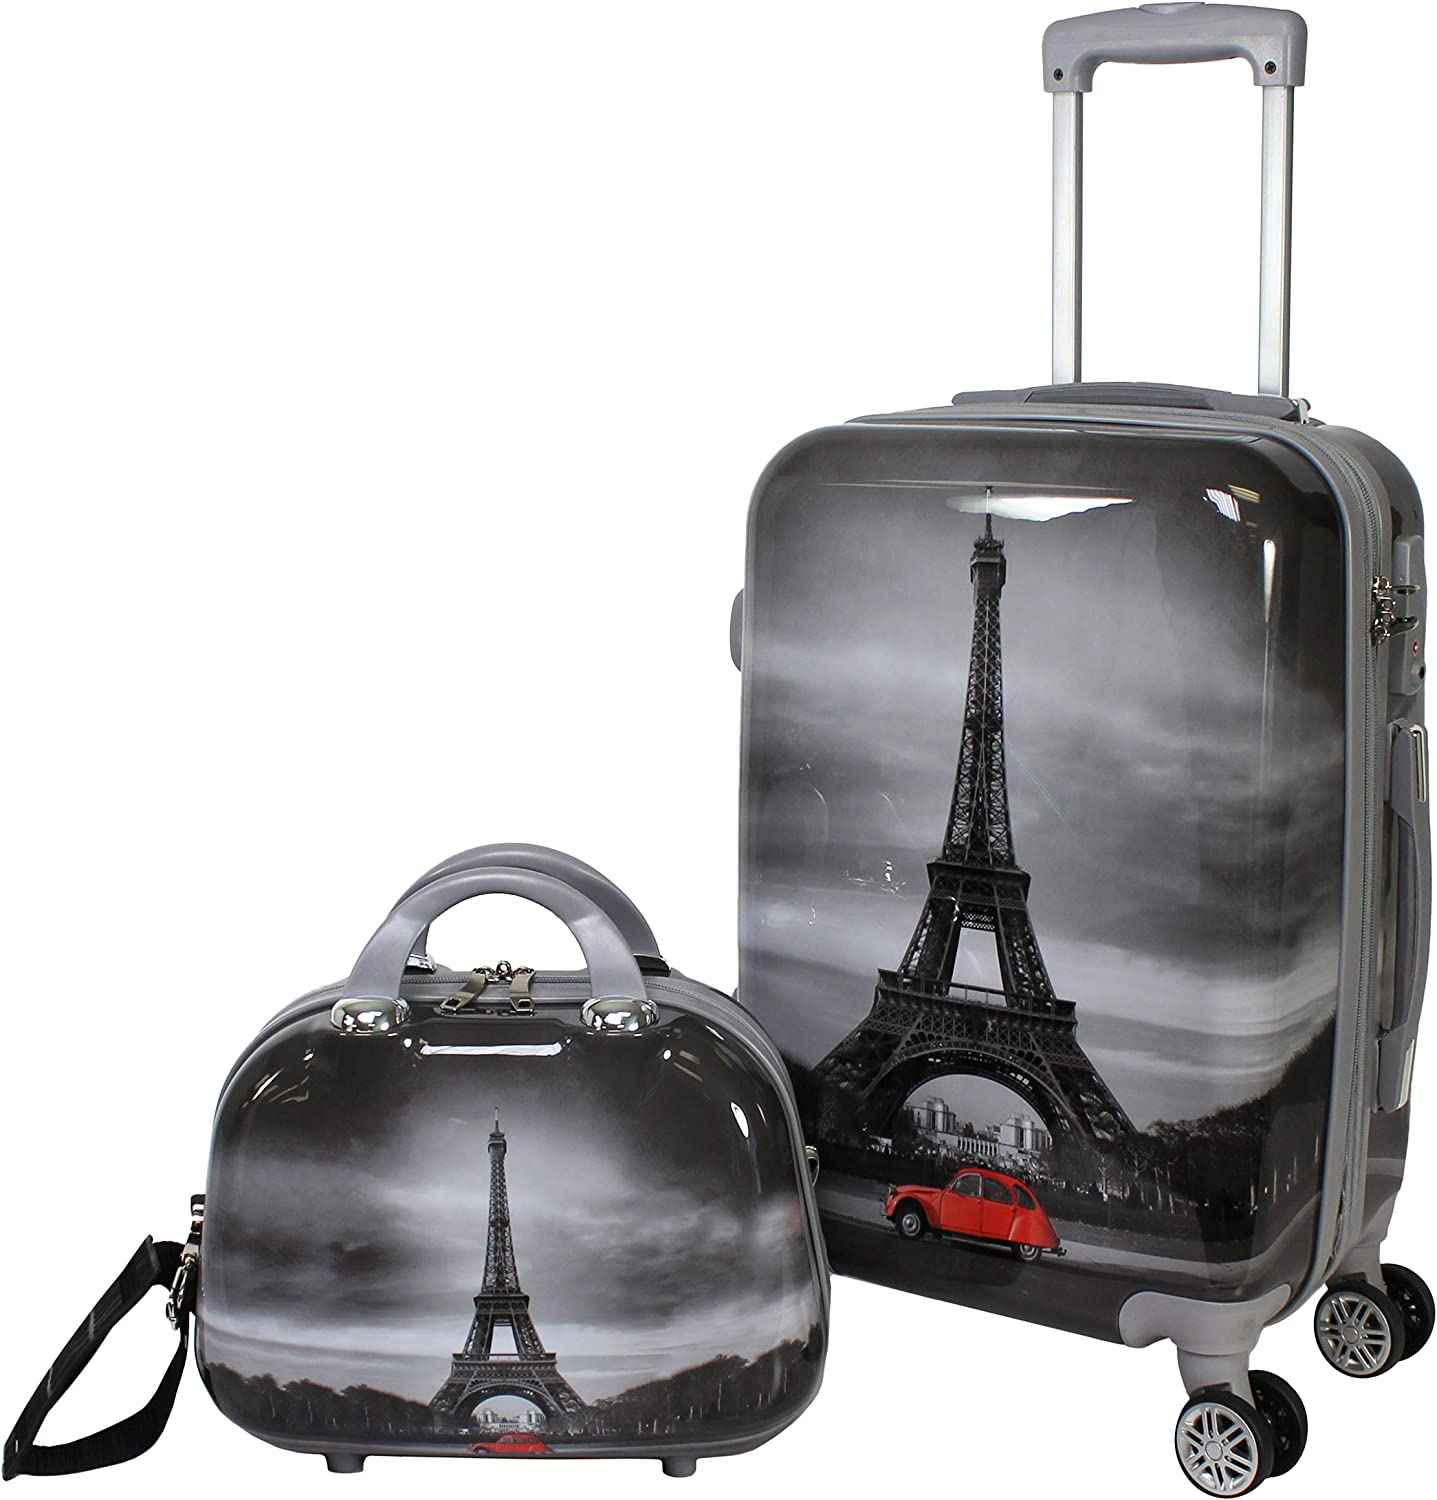 World Traveler Destination Collection 2-Piece Carry-On Luggage Set, Paris